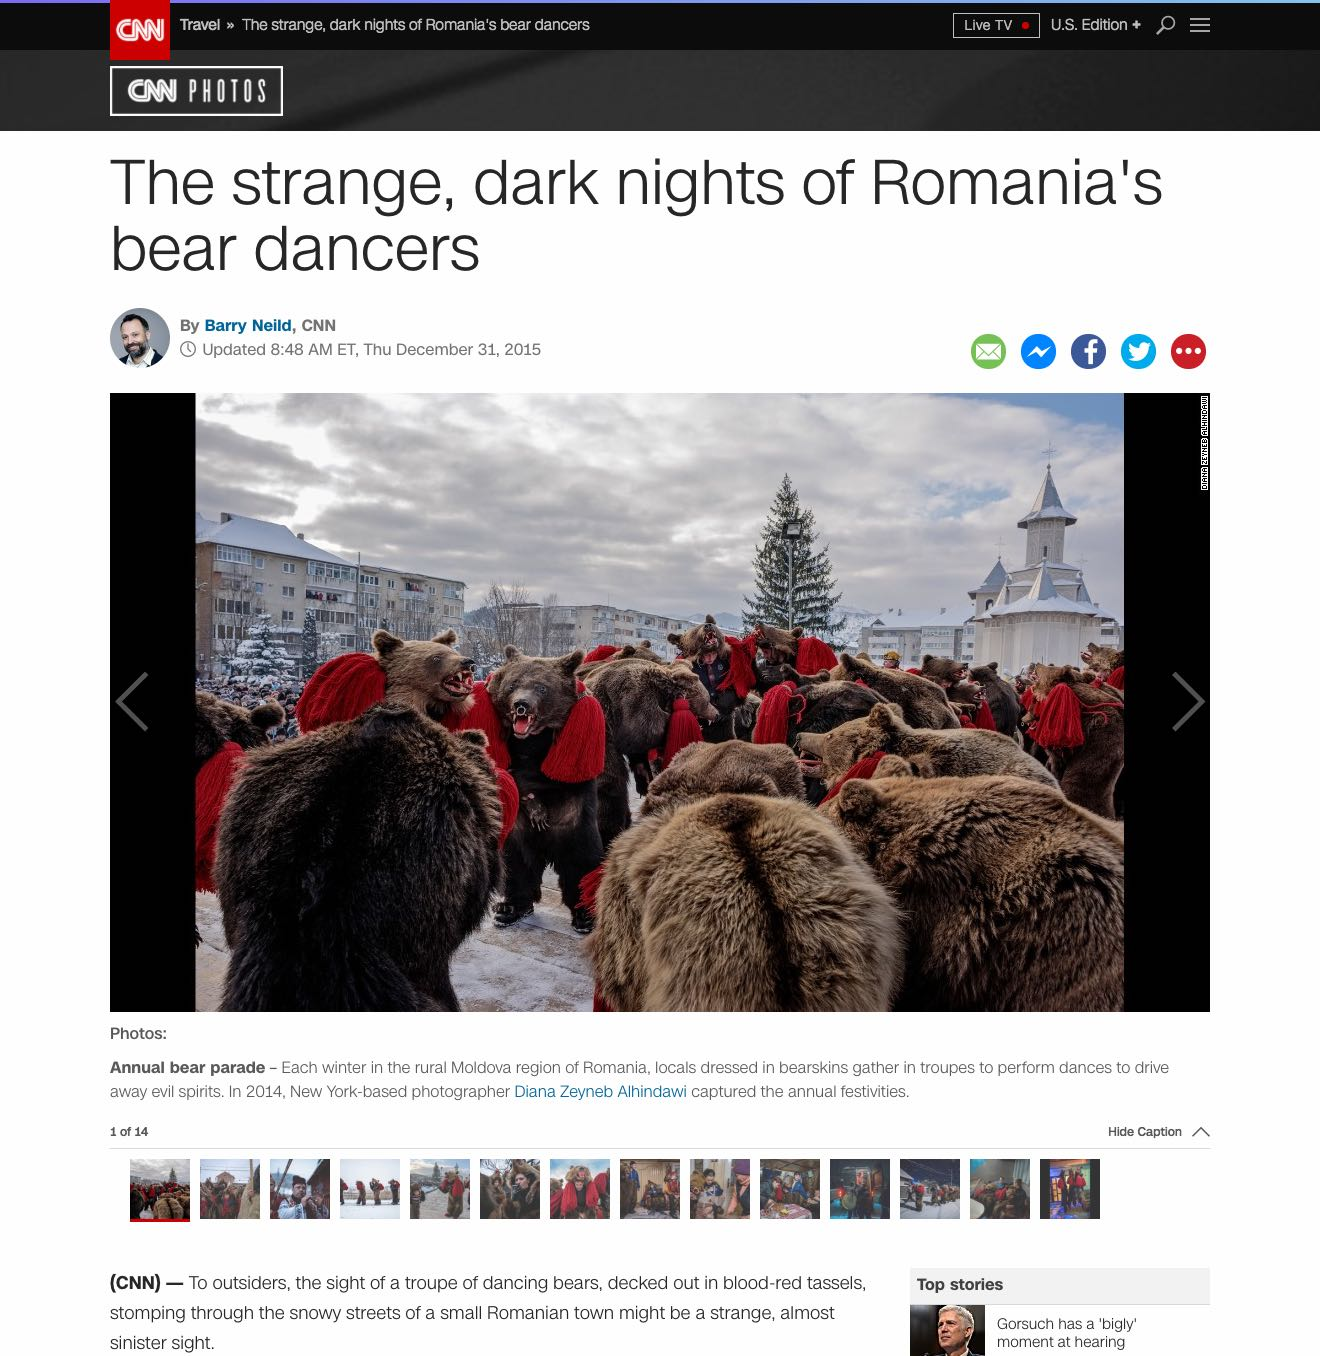 CLICK on title below to link to full article with slideshow     The strange, dark nights of Romania's bear dancers  | CNN.com, Nov 2, 2015